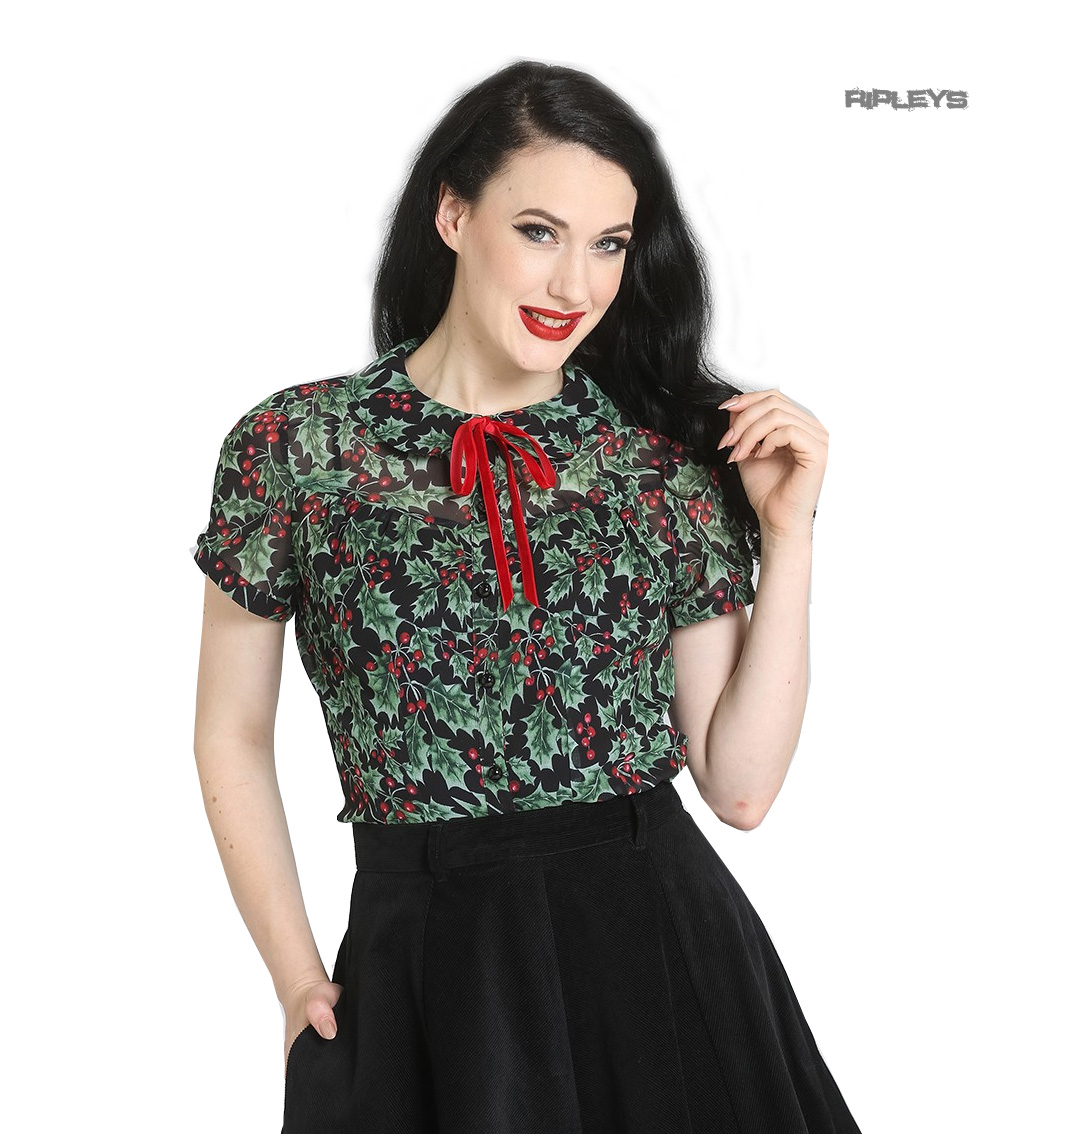 Hell-Bunny-50s-Shirt-Top-Christmas-Festive-HOLLY-Berry-Blouse-Black-All-Sizes thumbnail 12